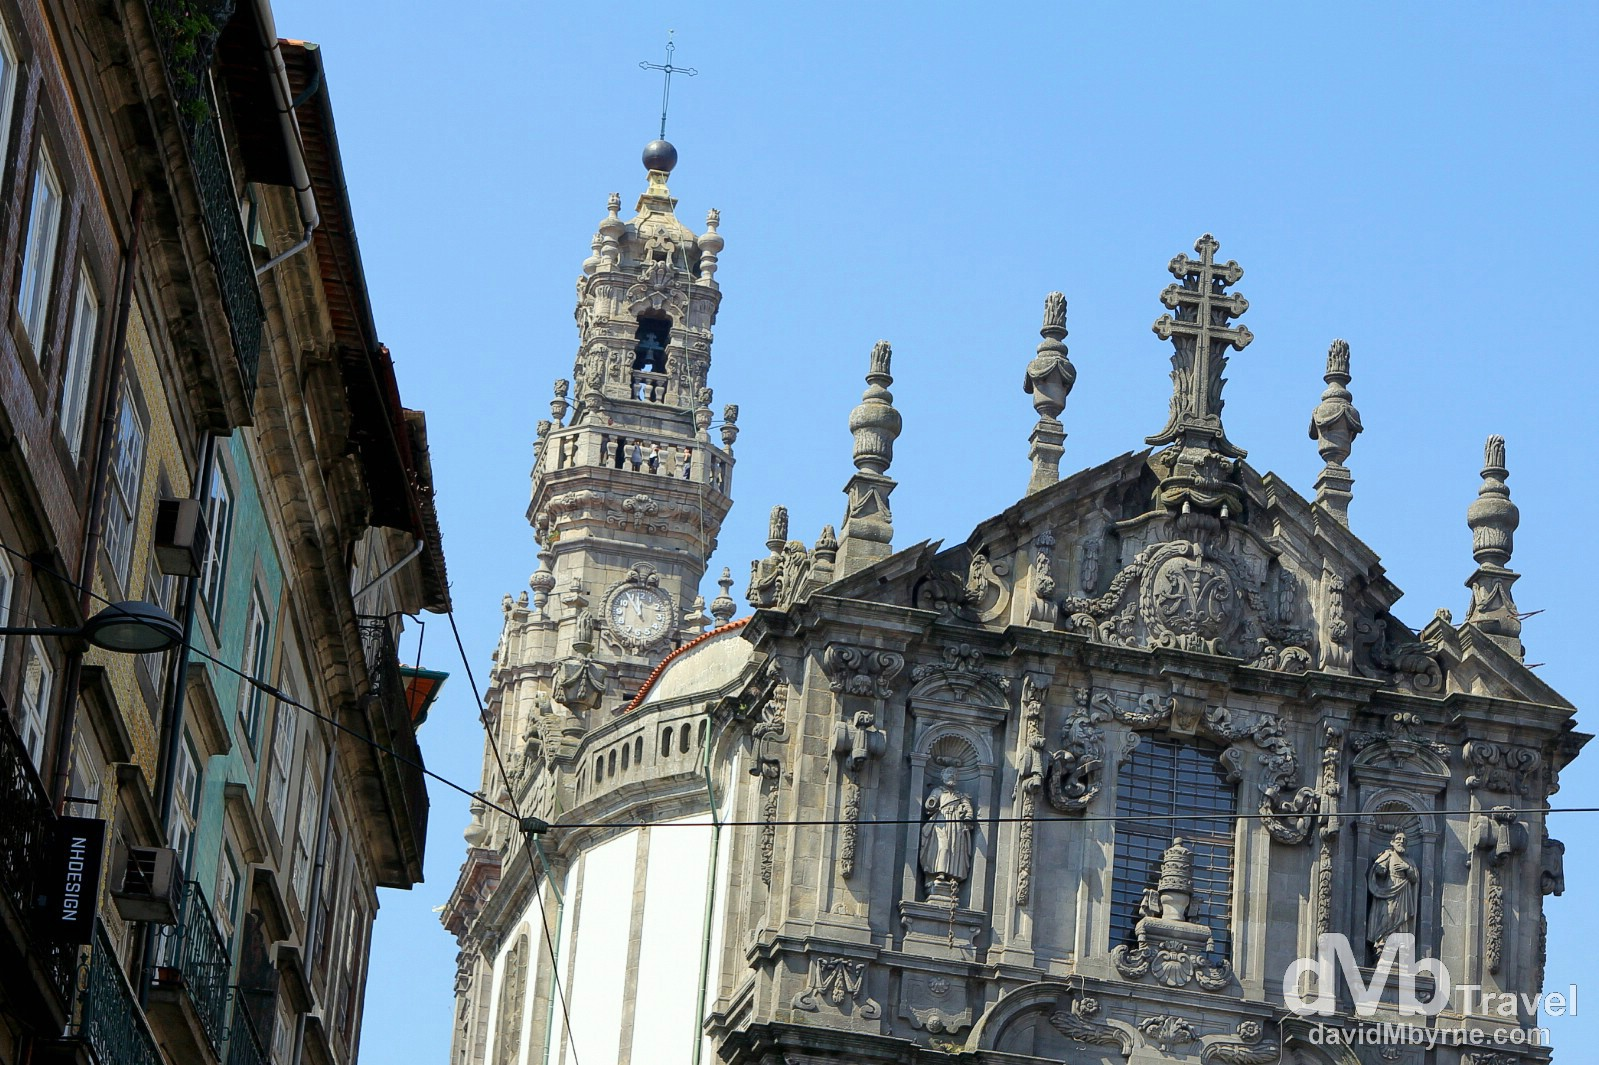 The Baroque 18th century Clérigos Church as seen from Rua dos Clerigos, Porto, Portugal. August 29th 2013.